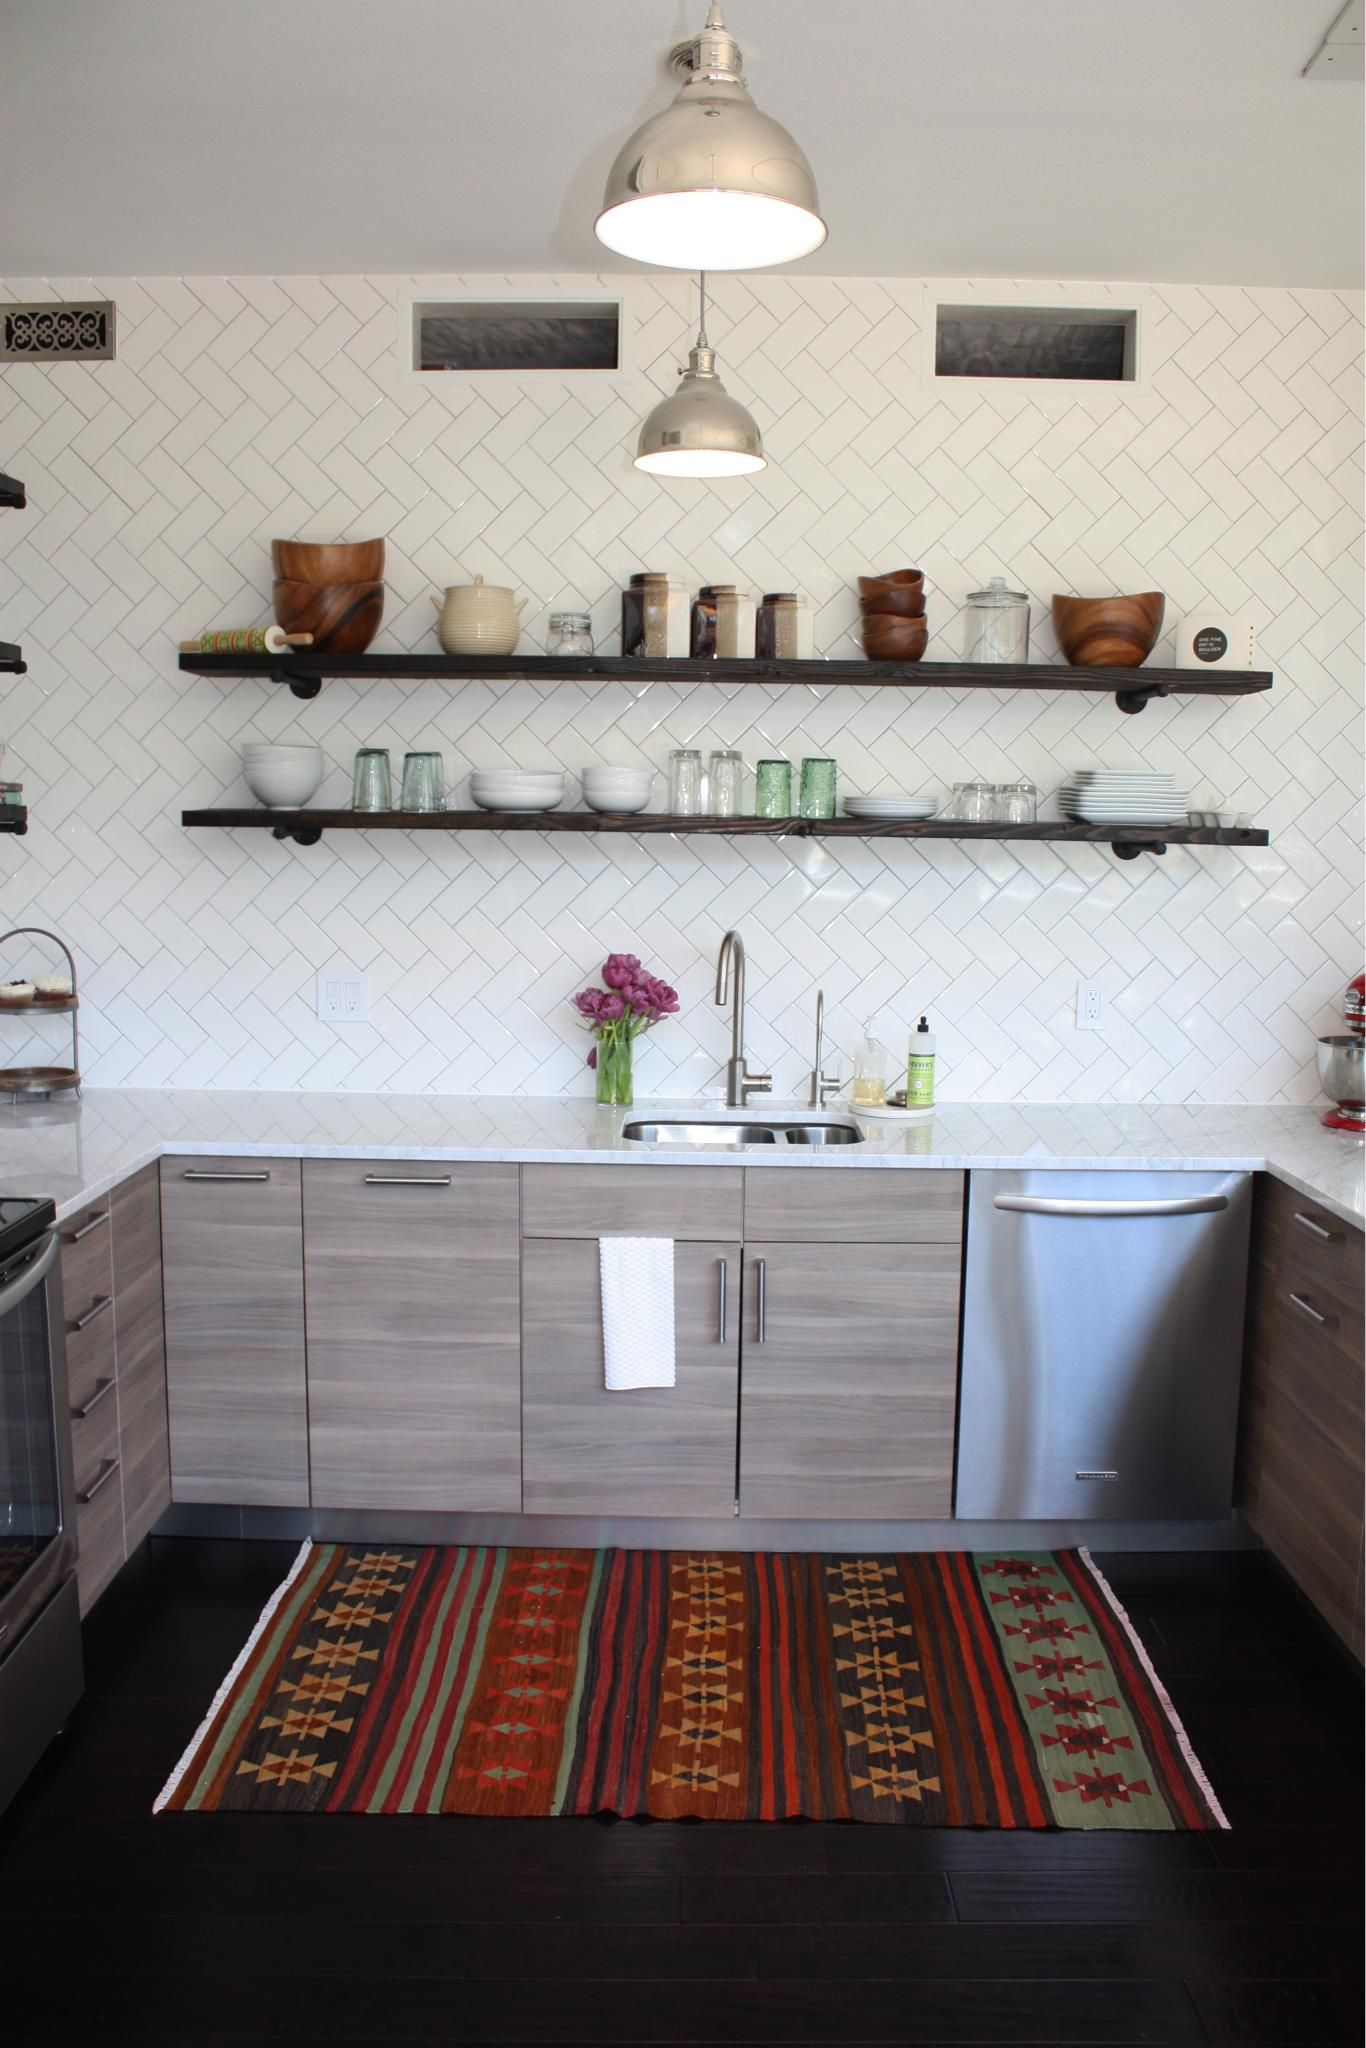 Diy Kitchen Renovation Remodel Before And After Boulder Co Ikea Sofielund Cabinets Open Shelving Herringbone Tile Backsplash